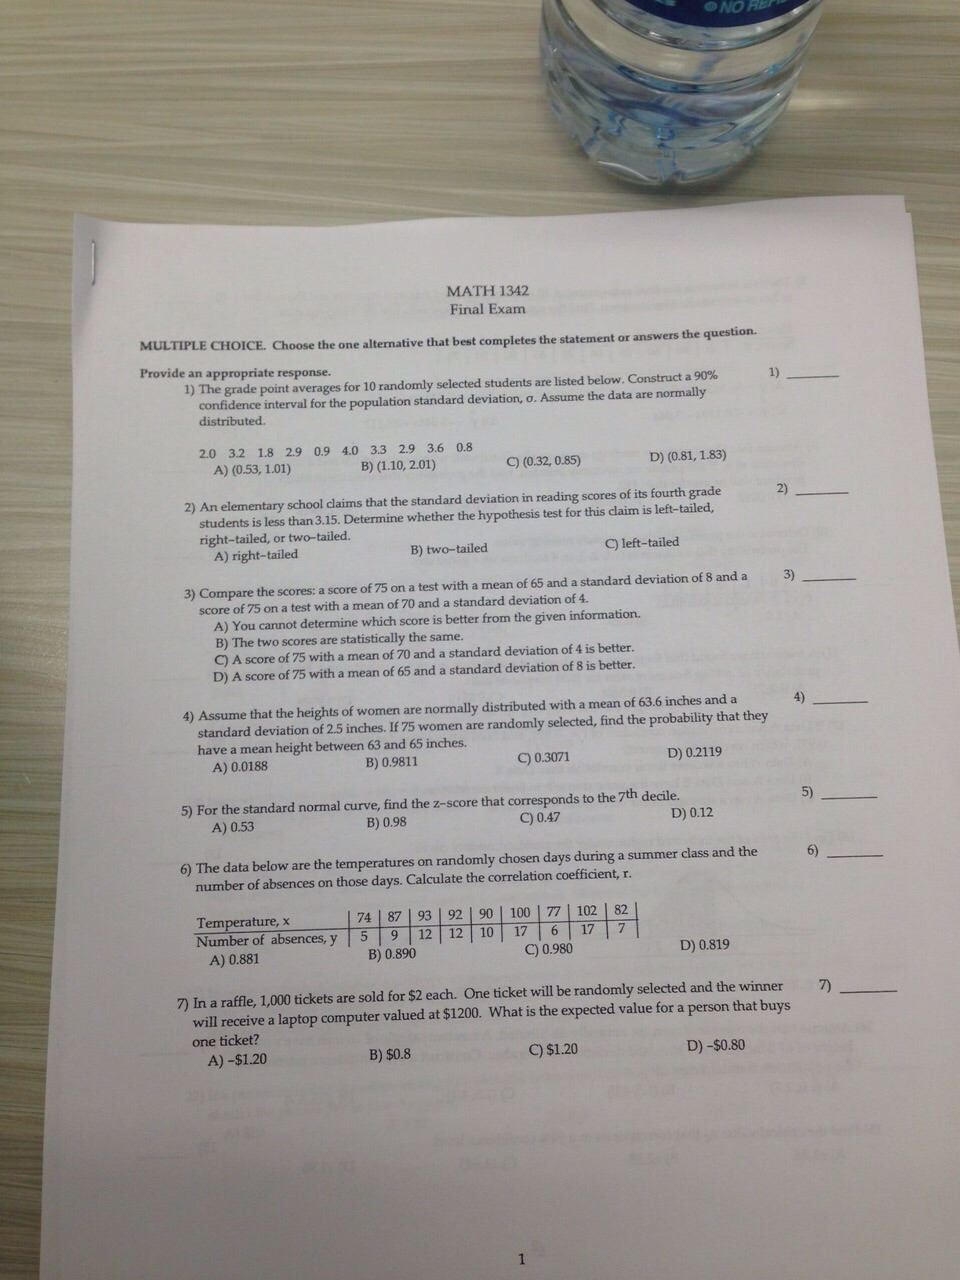 Solved: MATH 1342. Final Exam MULTIPLE CHOICE. Choose The ...